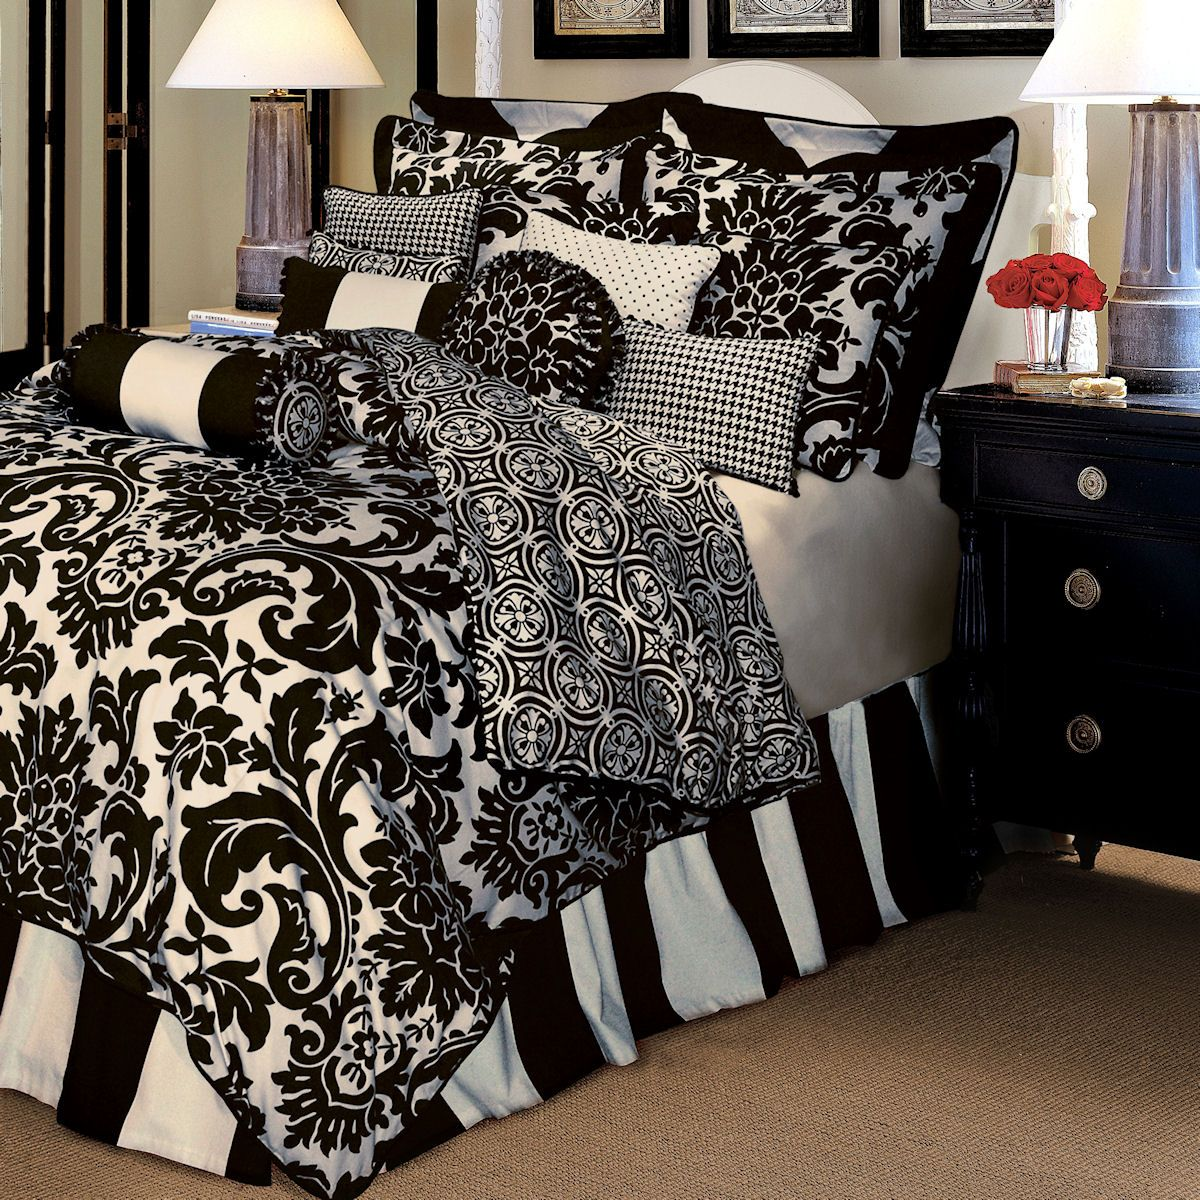 black and white king size comforter sets Image detail for   Comforter Sets Rose Tree Luxury Bedding  black and white king size comforter sets